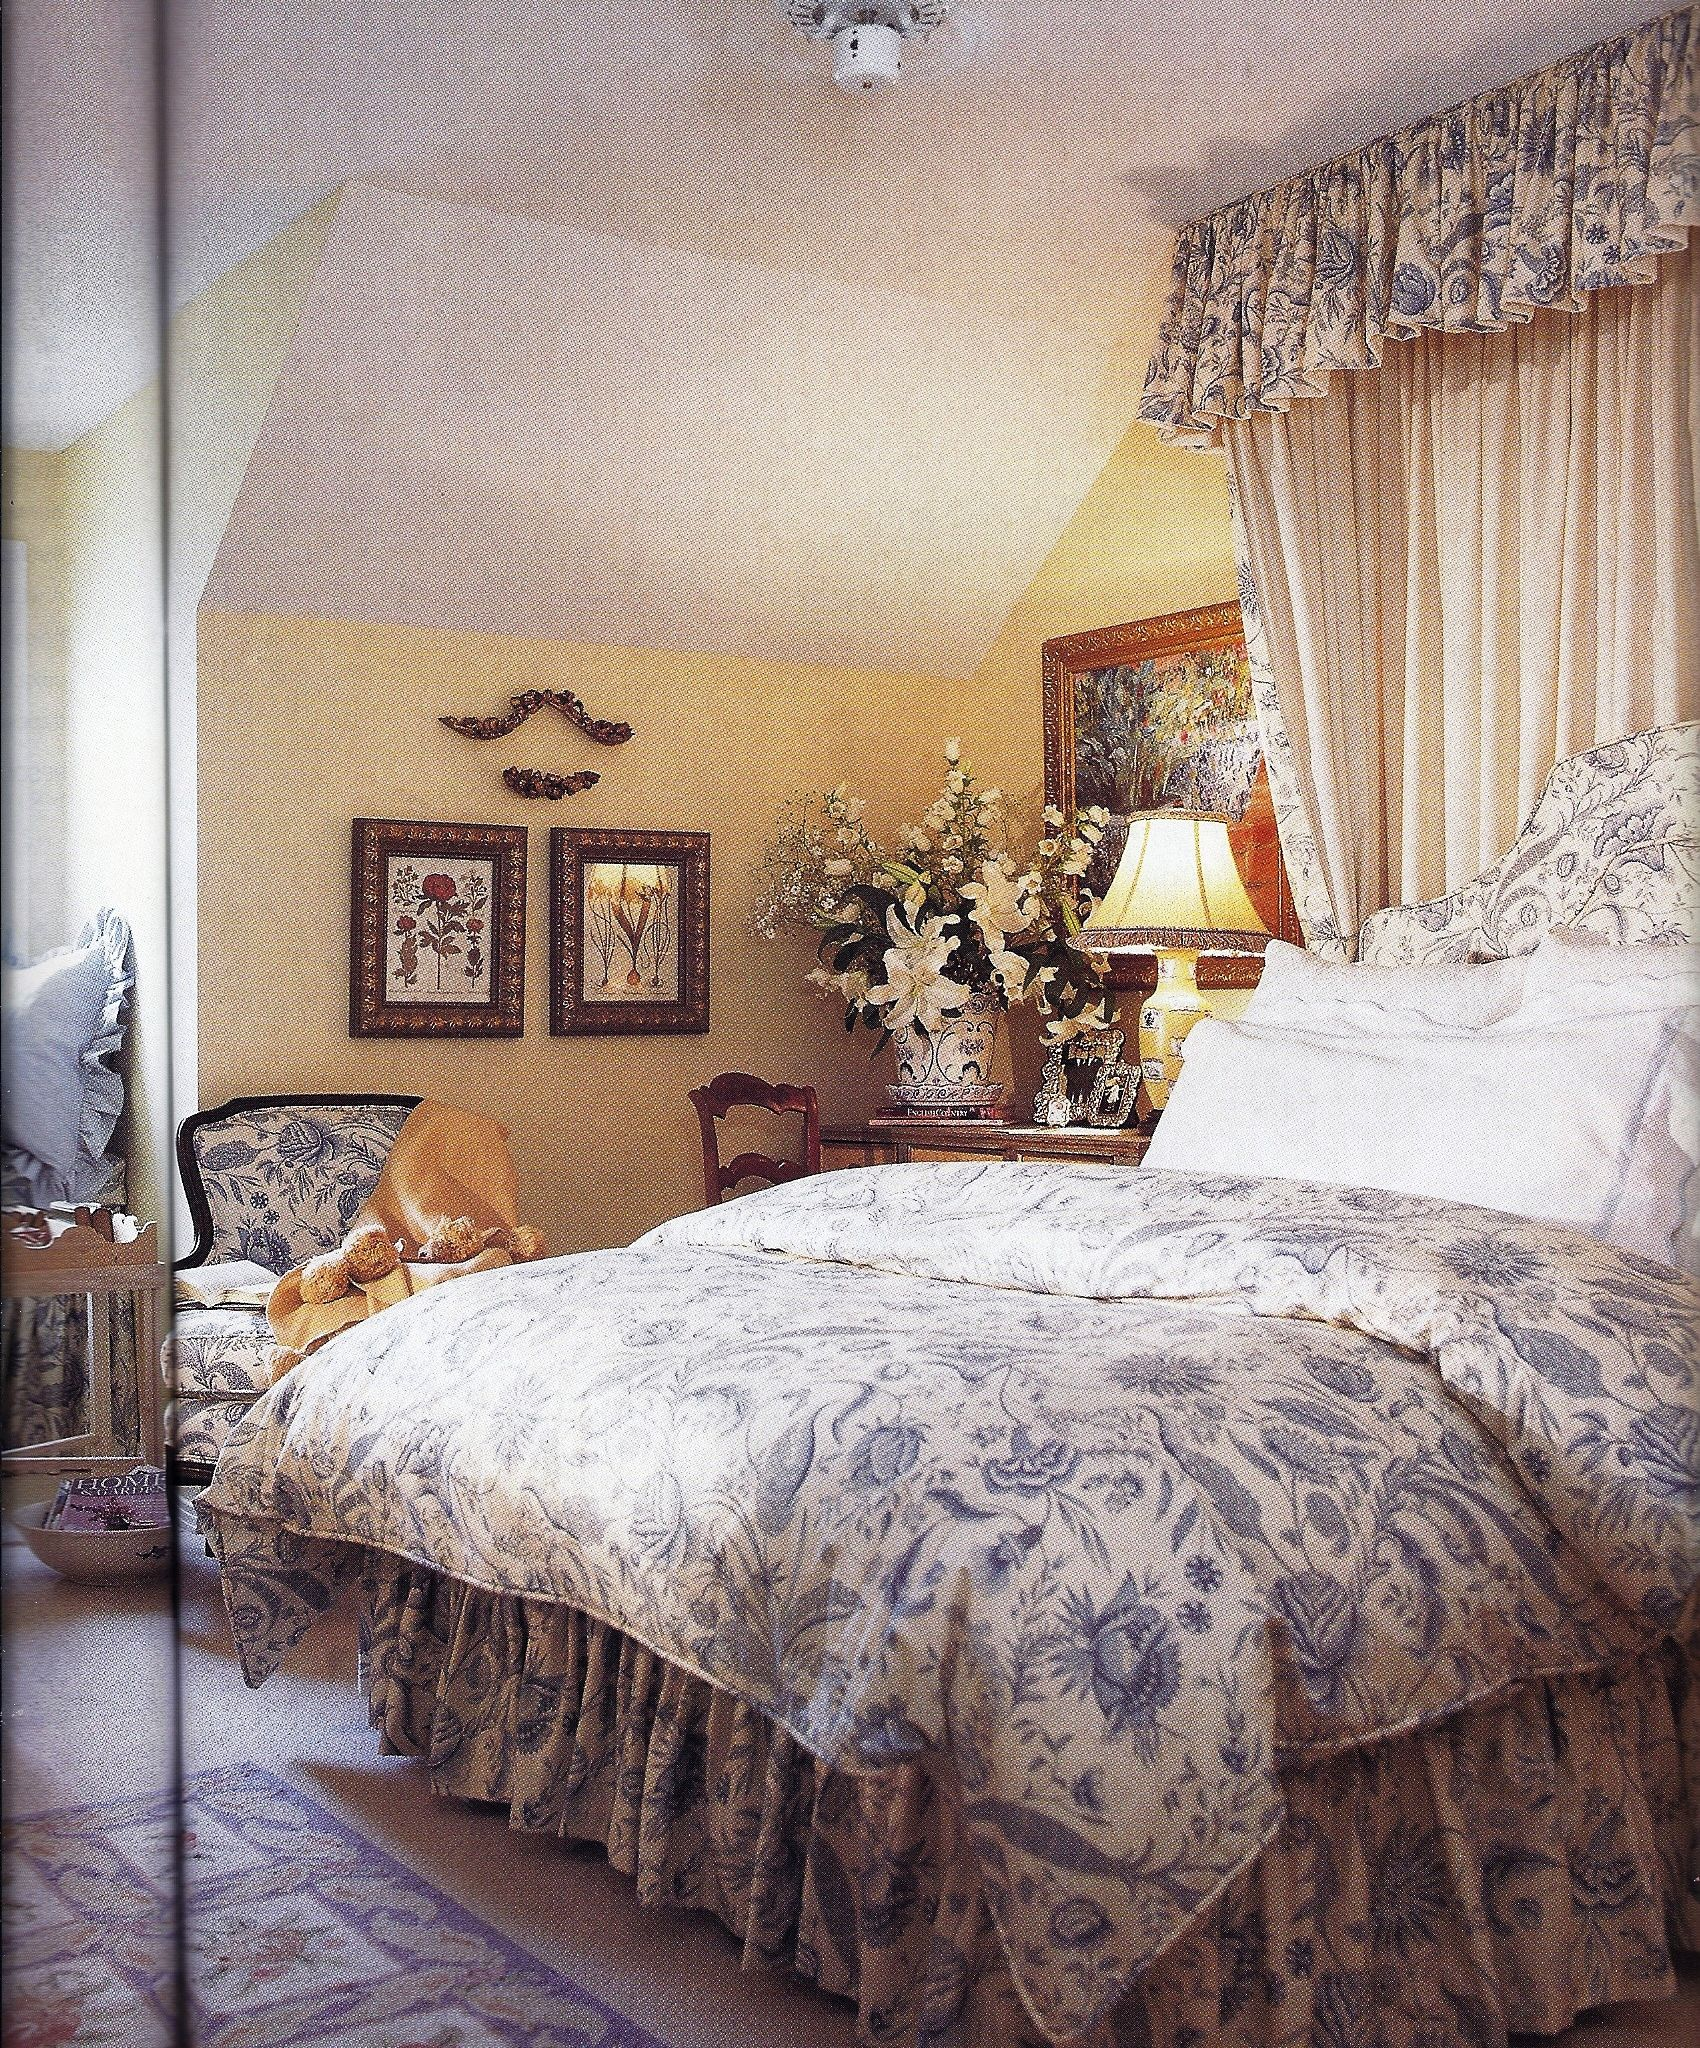 Bedroom Decorating Ideas Totally Toile: Pale Yellow Walls With Blue And White Toile